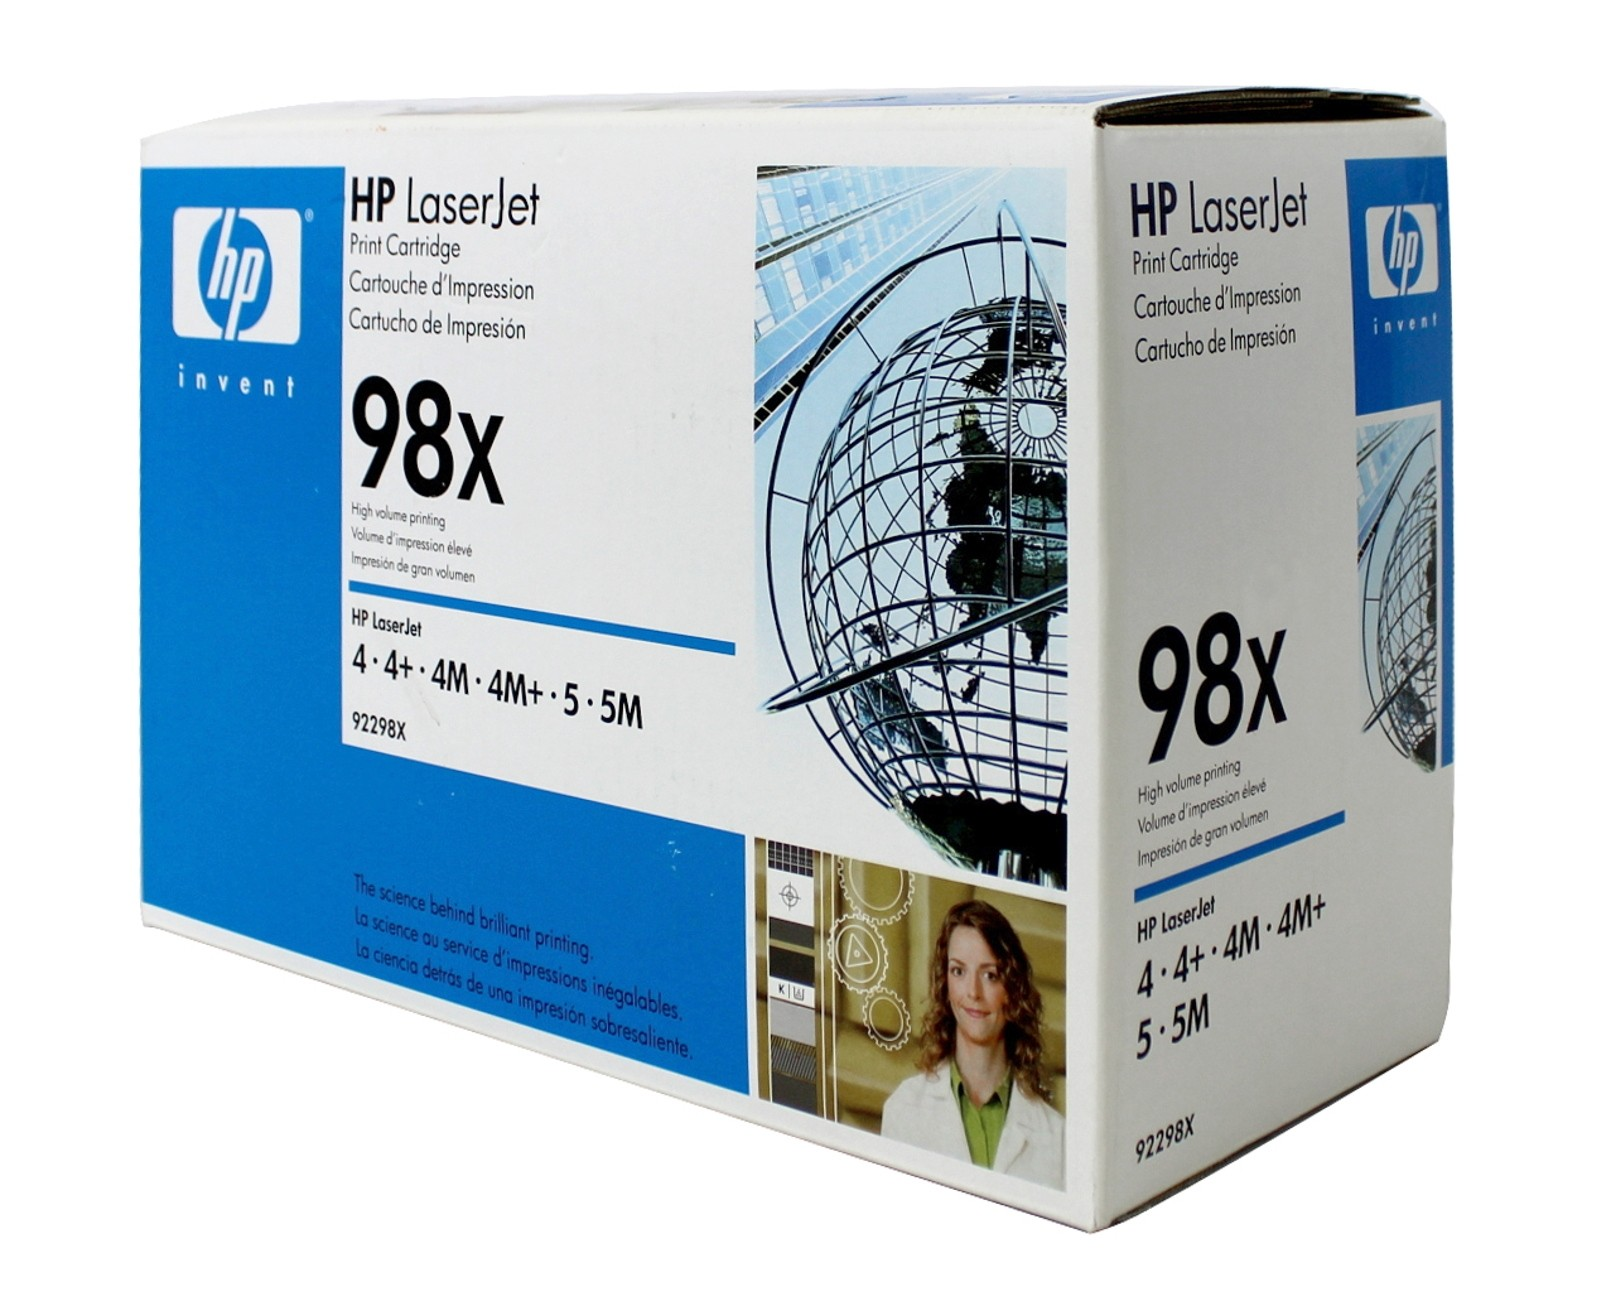 Genuine HP 98X High Capacity Black Toner Cartridge (92298X)